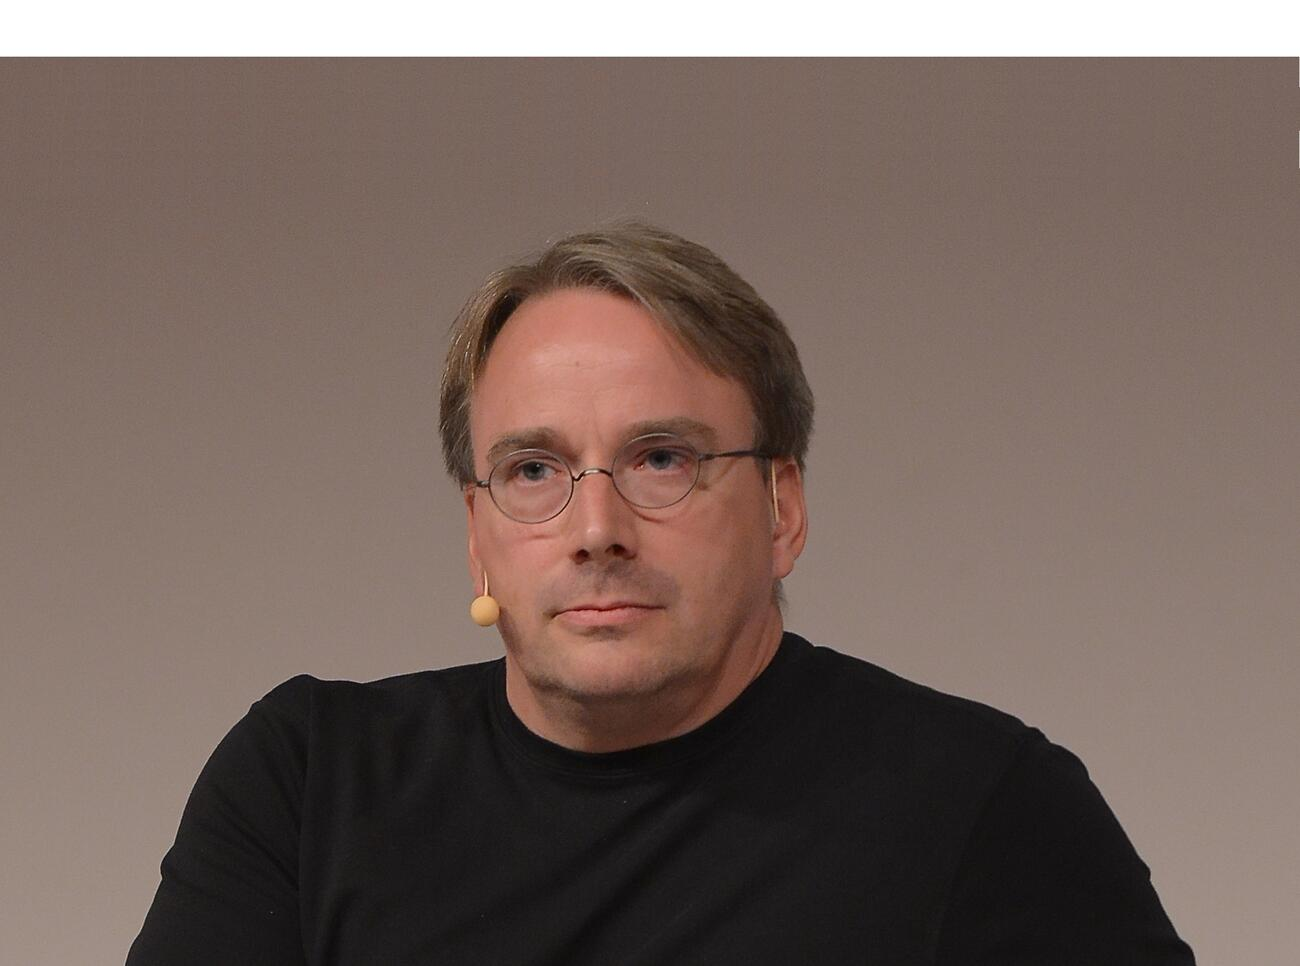 Part 2 of Interview with Linus Torvalds thumbnail